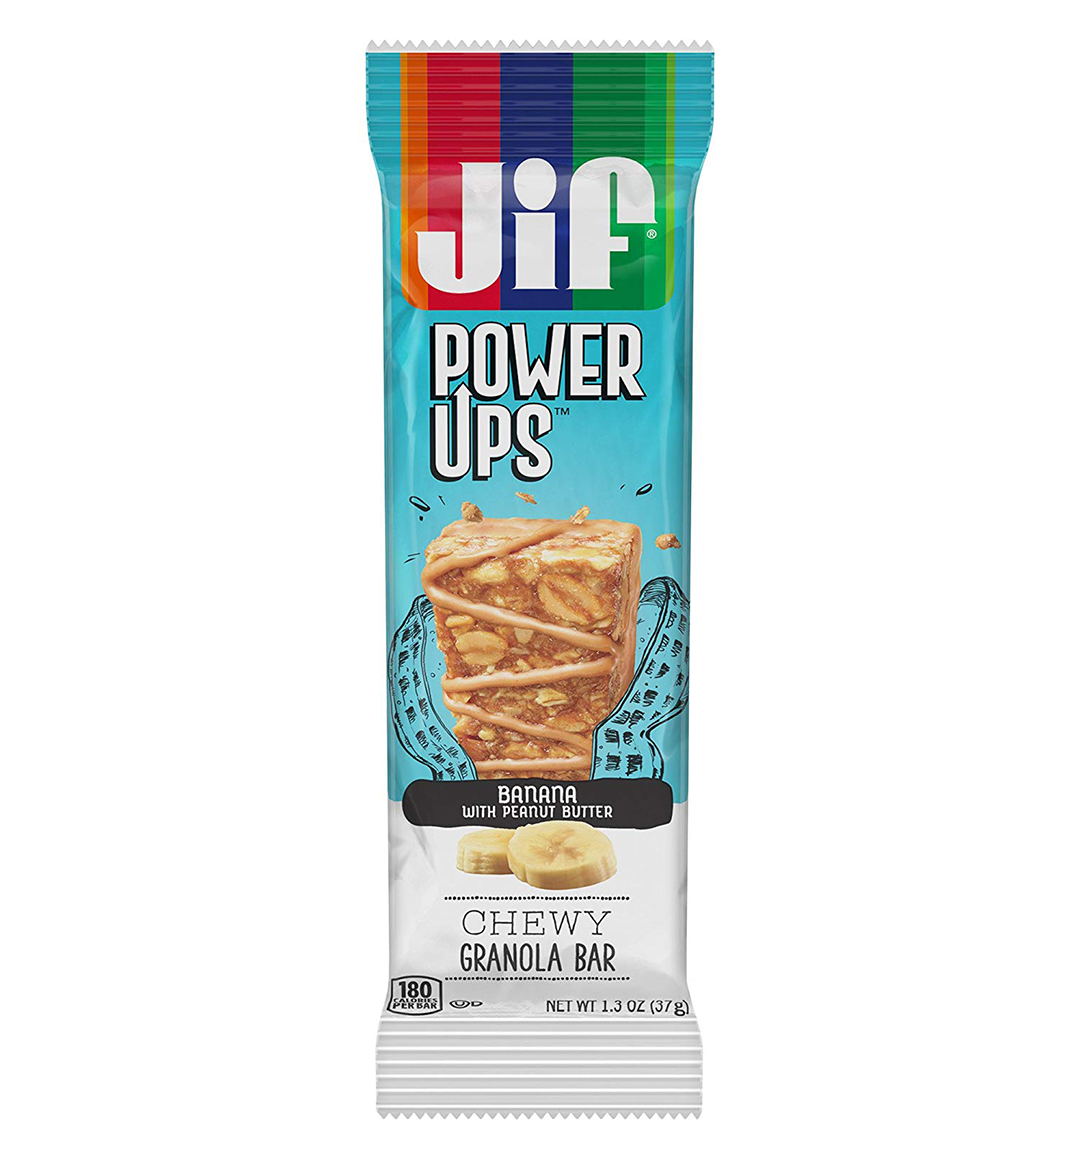 Jif Power Ups Banana Chewy Granola Bar